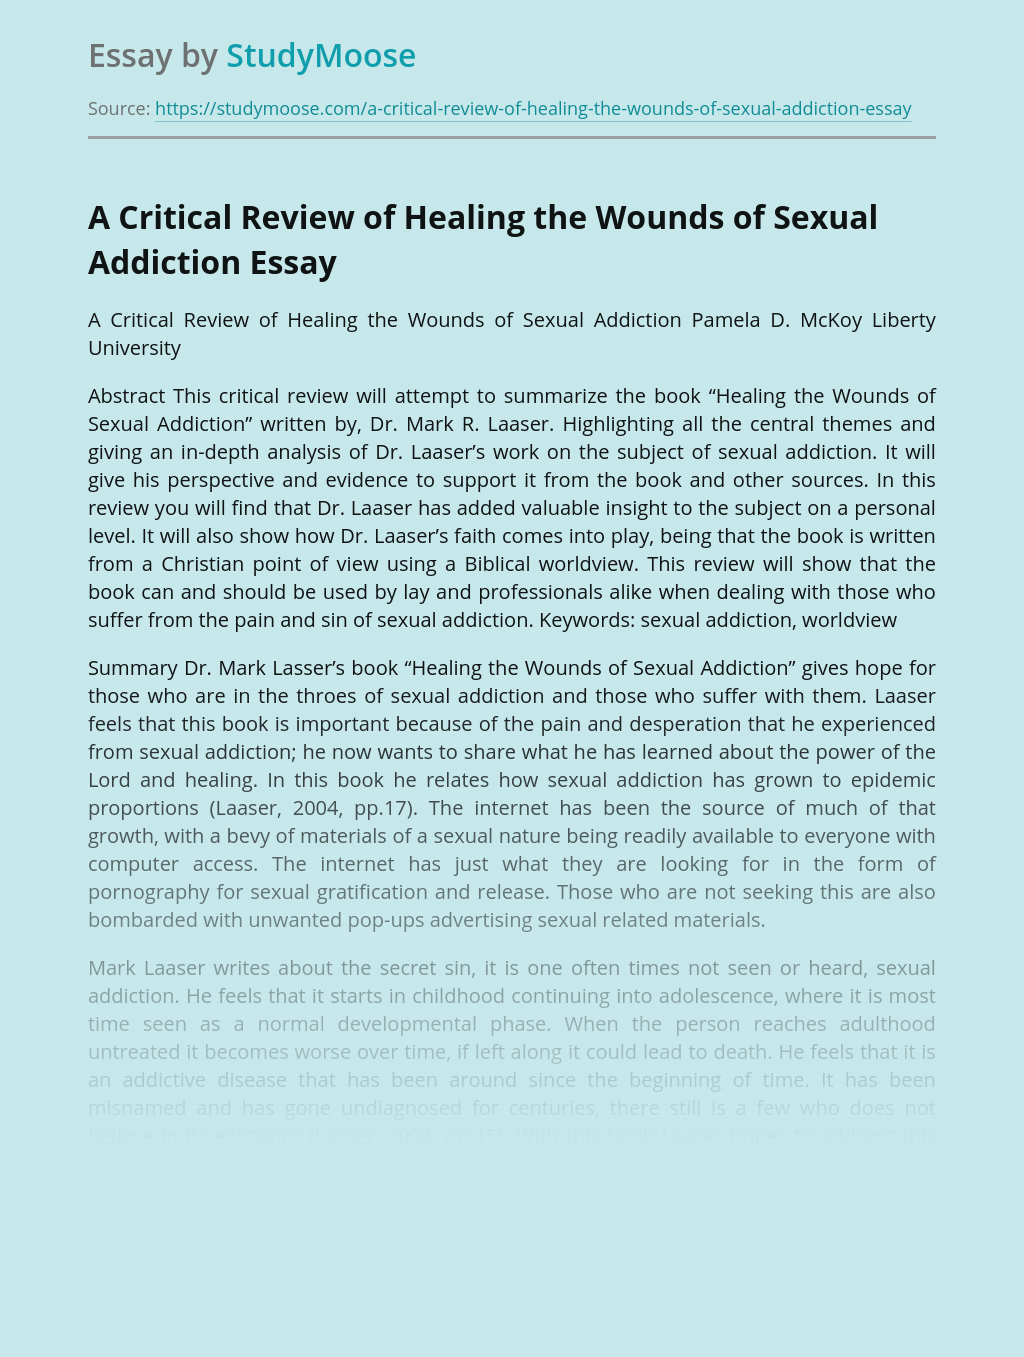 A Critical Review of Healing the Wounds of Sexual Addiction